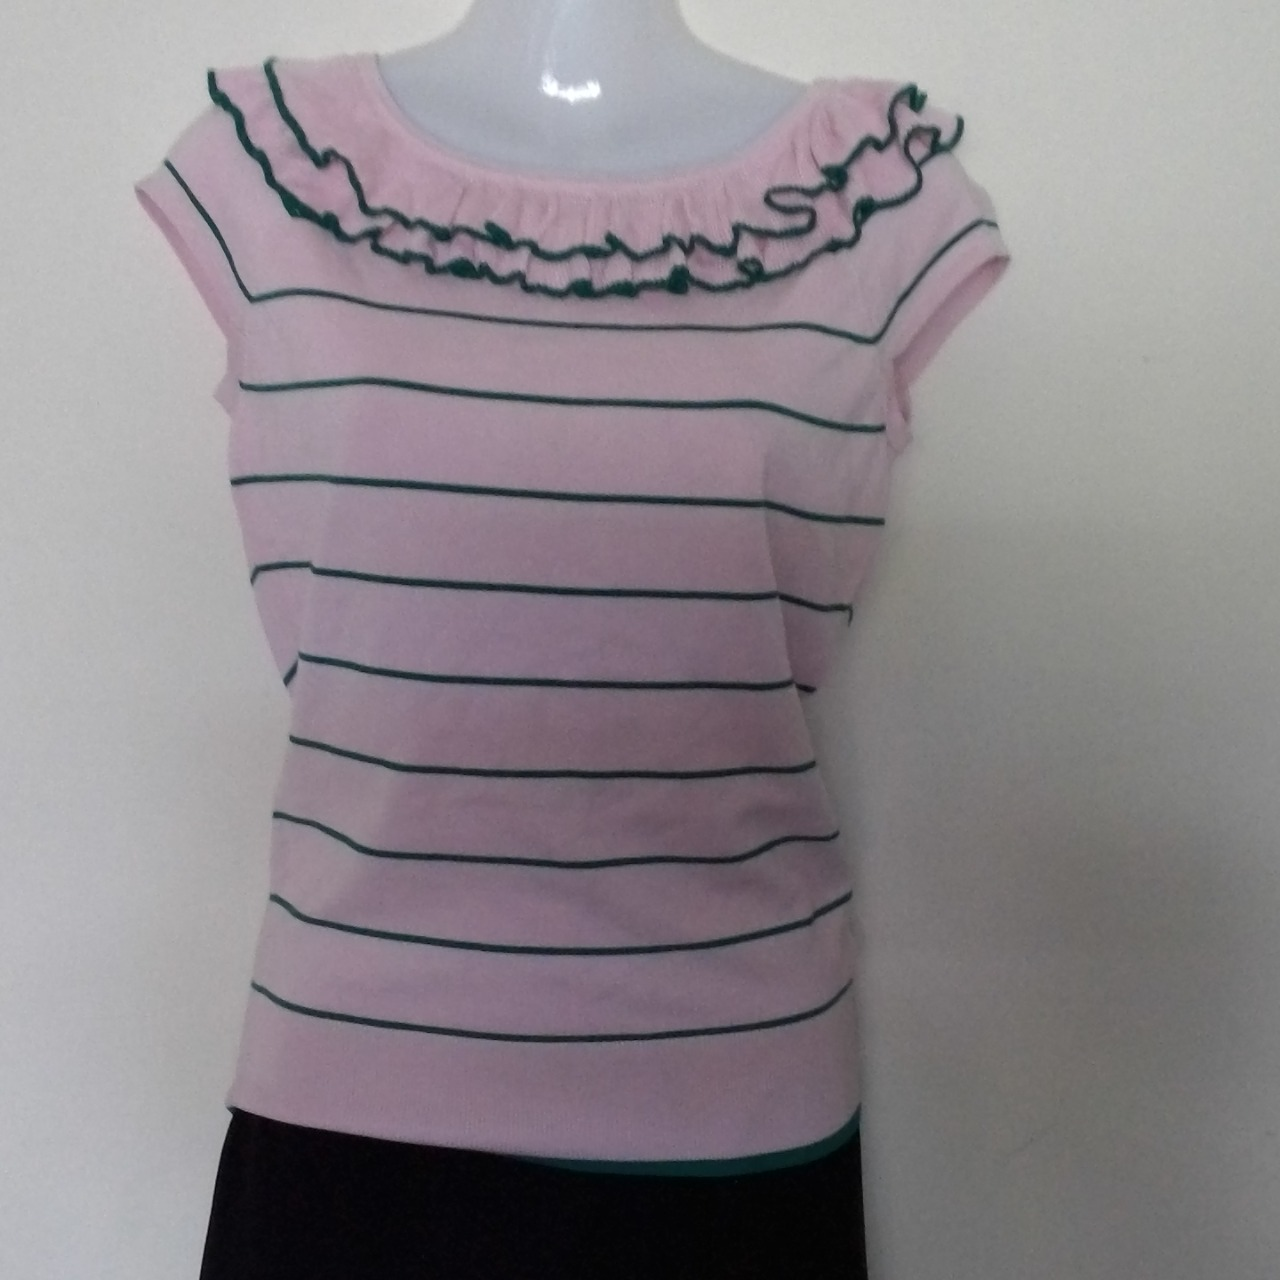 BNWT Womens  REVIEW KNITTED STRIPE TOP Size 10 Short Sleeve Pink /Green FRILL NECK RRP $139.99